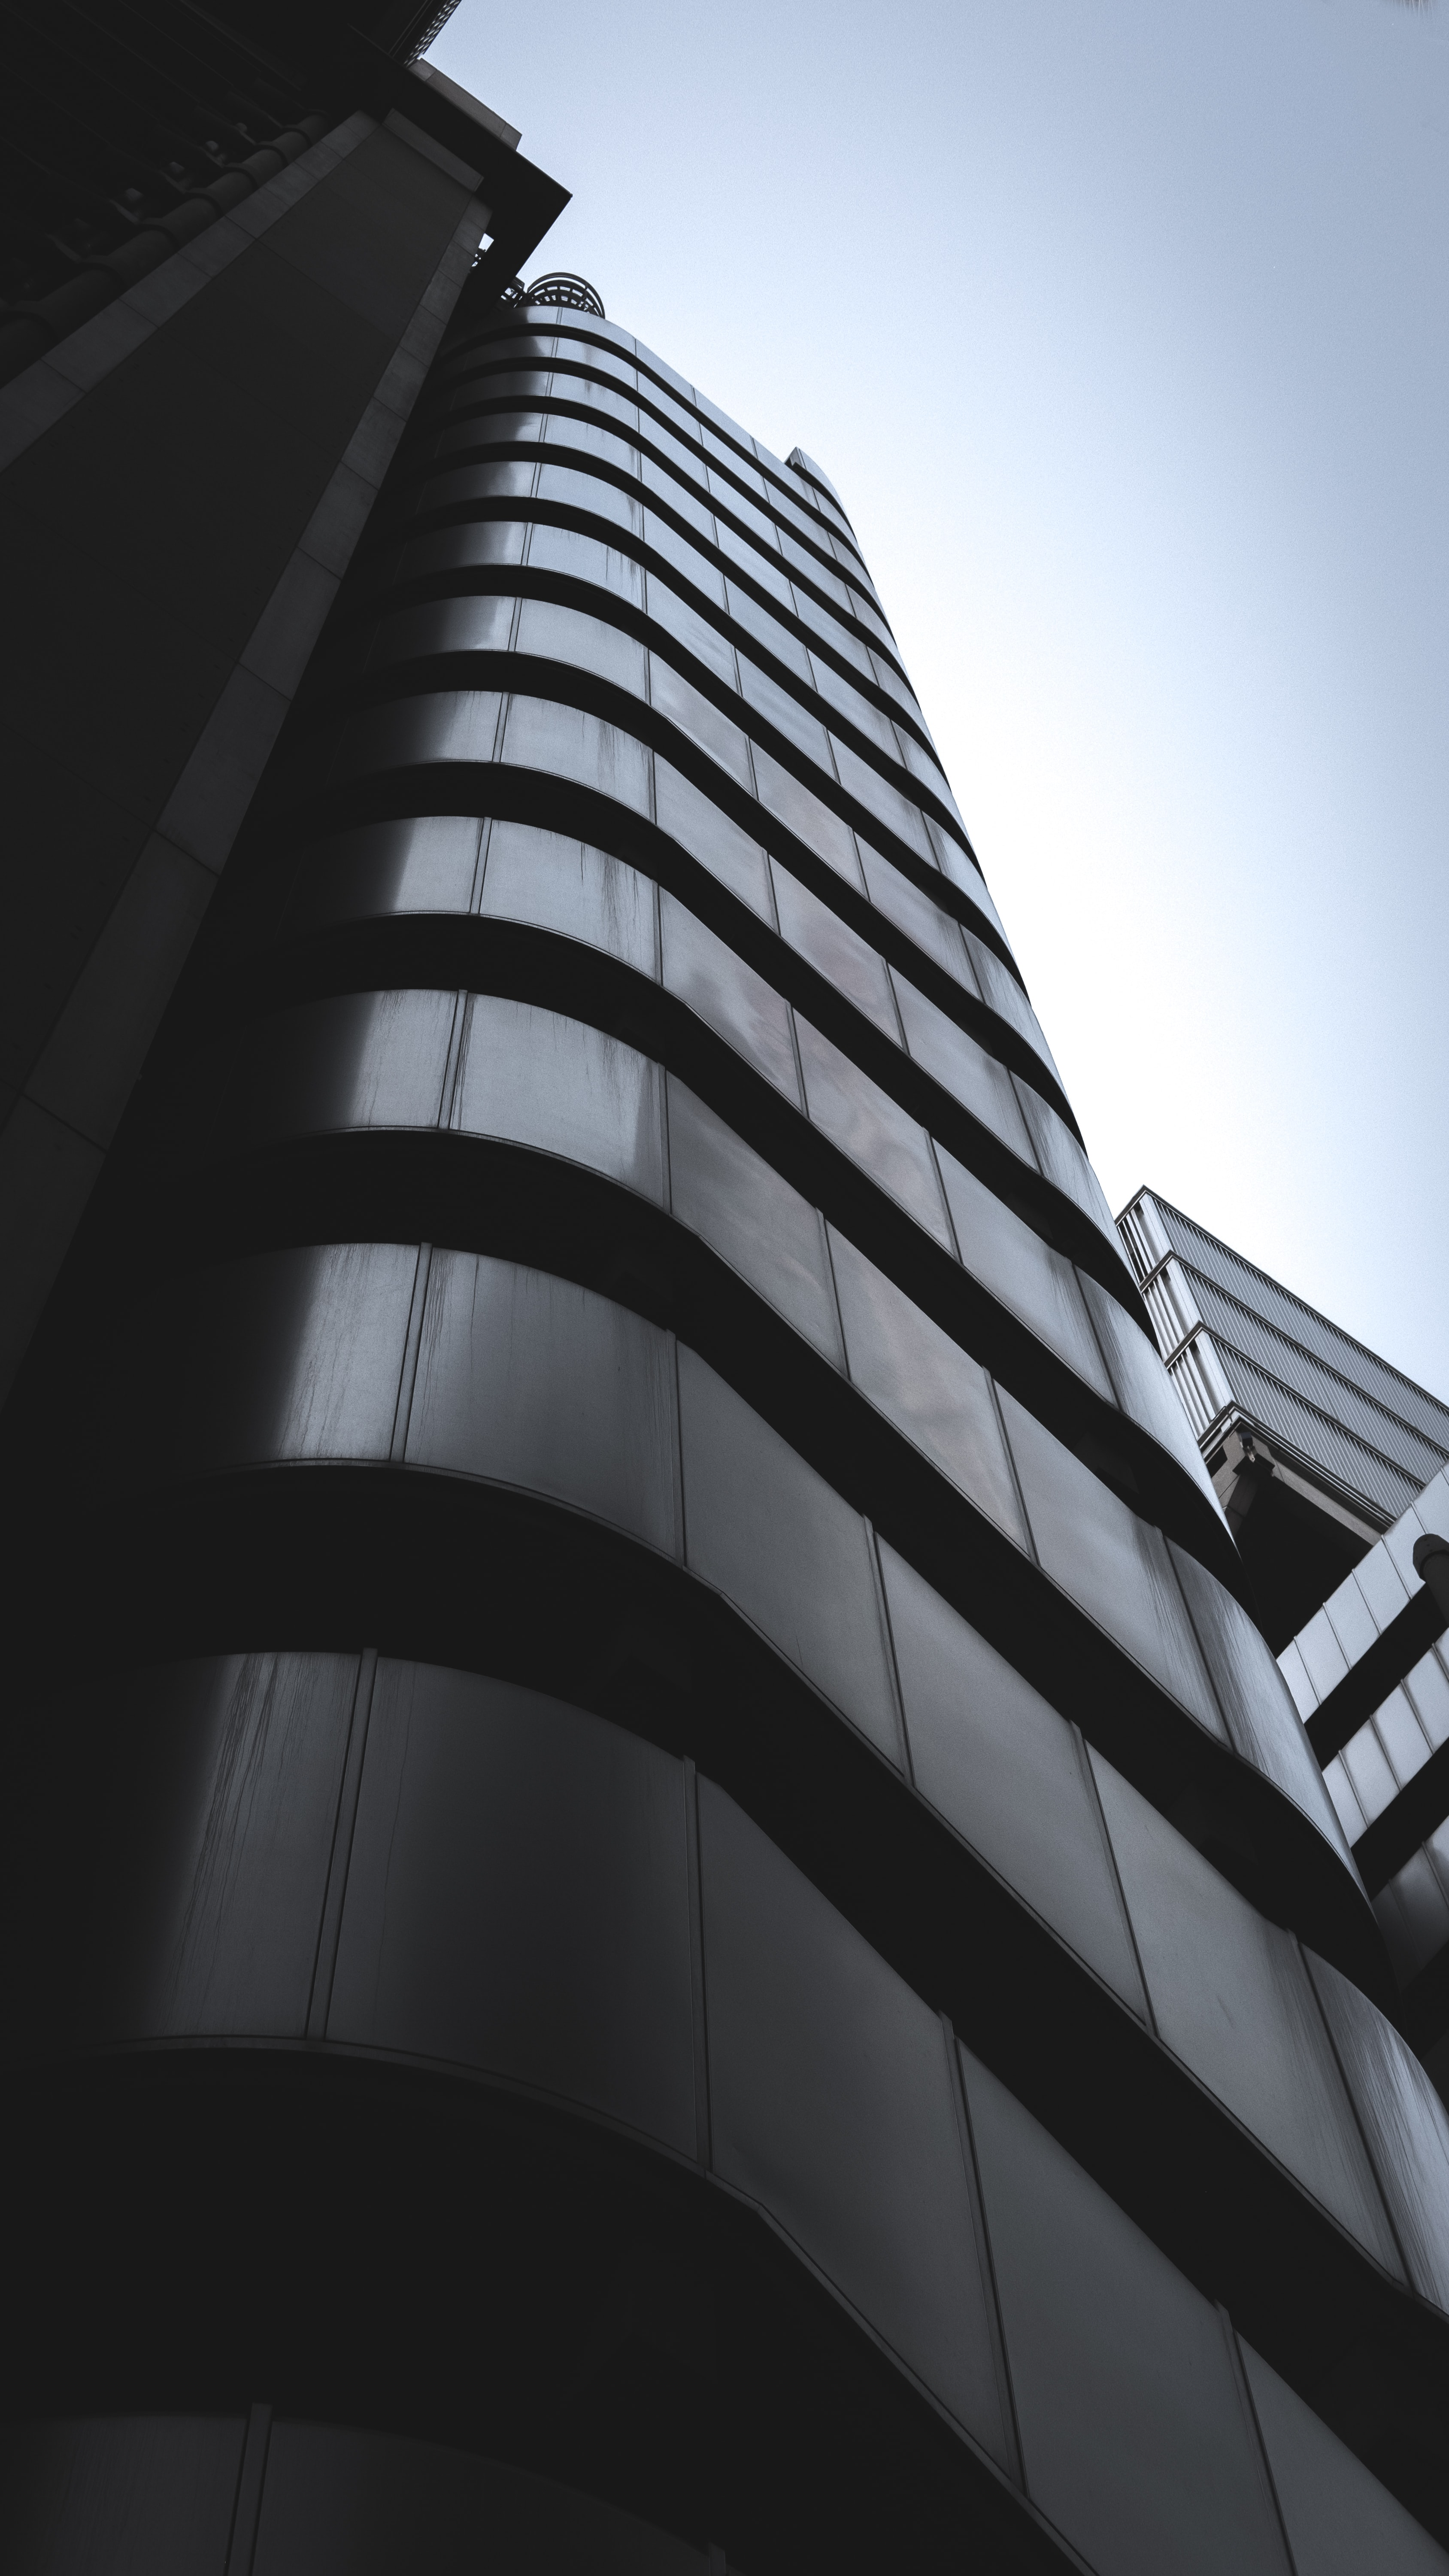 low-angle of high-rise building